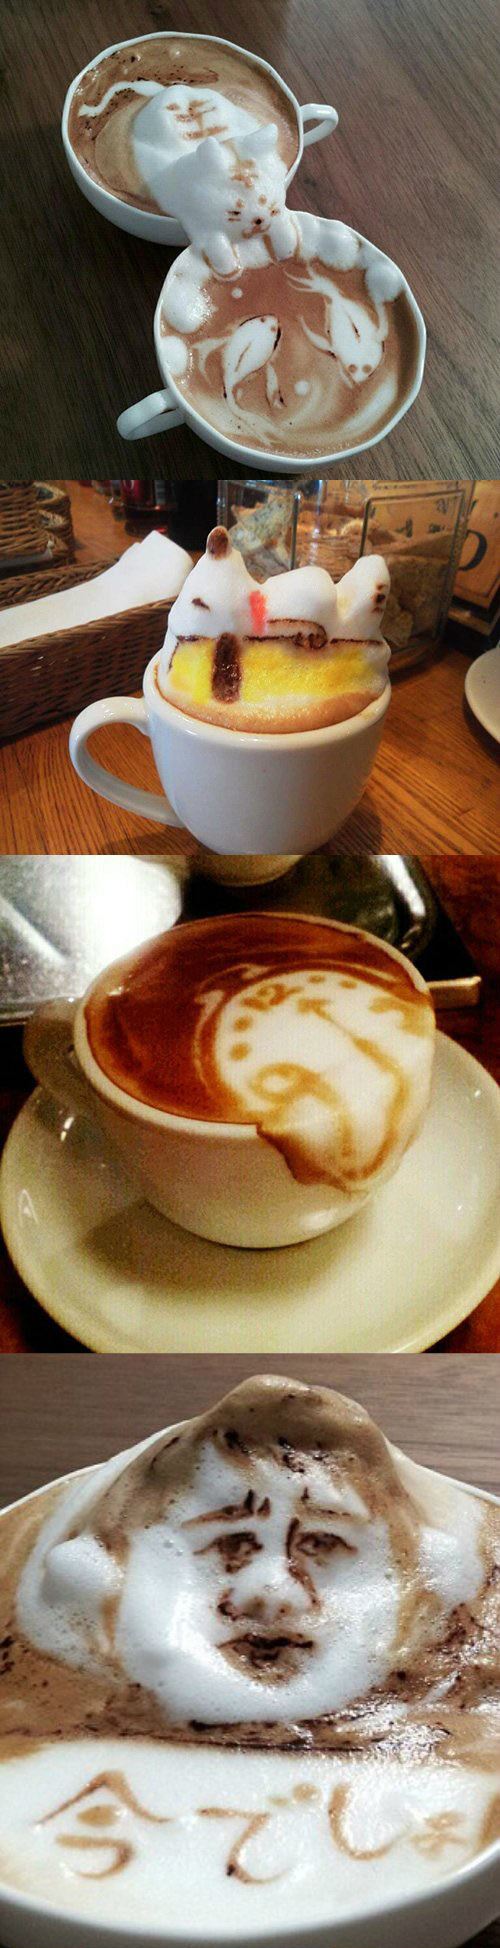 These baristas have real talent...